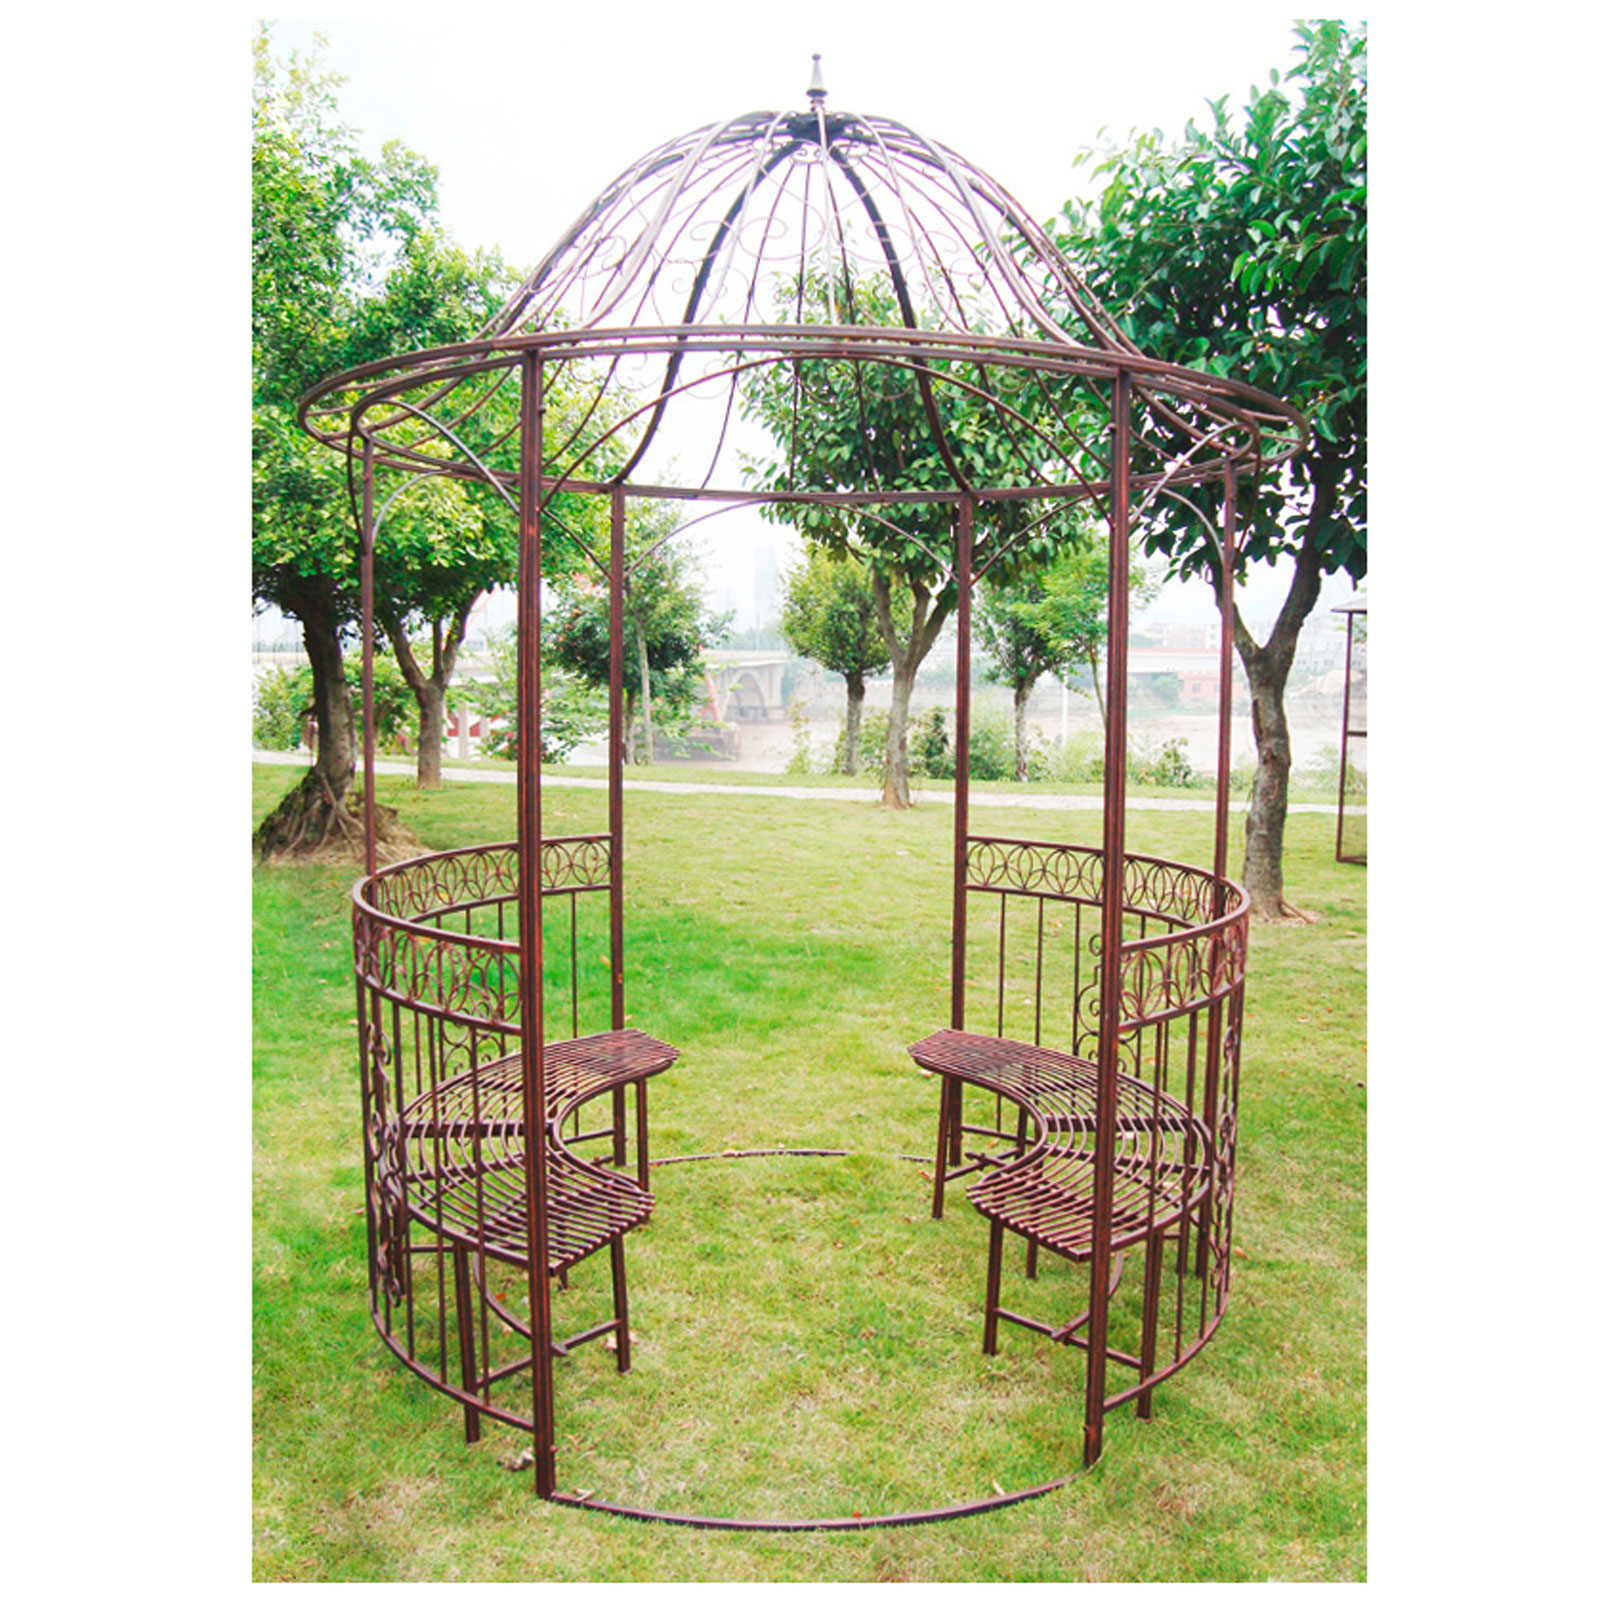 metall pavillon sun runder gartenpavillon mit bank gartenbank pergola rankhilfe ebay. Black Bedroom Furniture Sets. Home Design Ideas